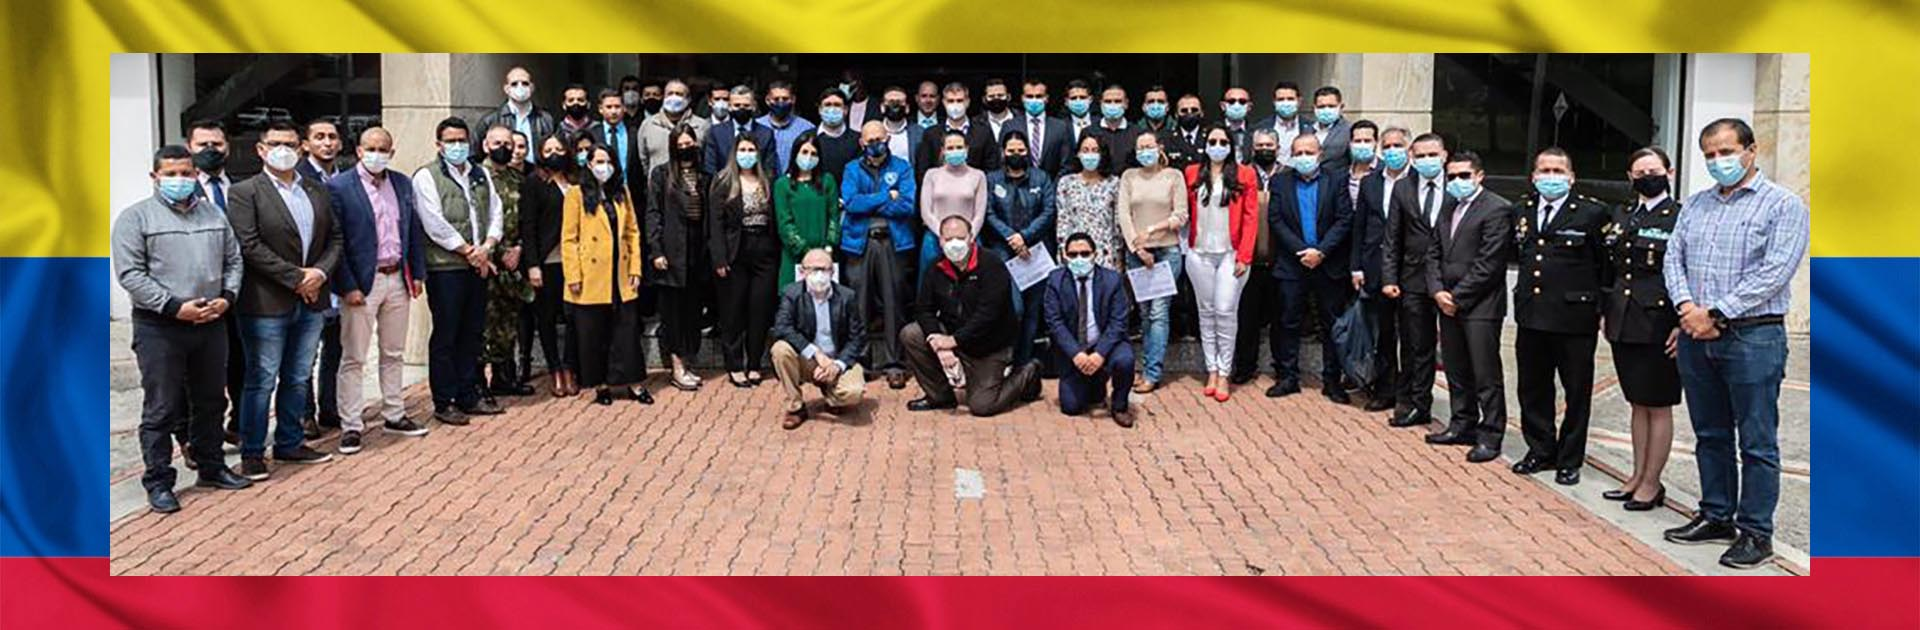 Perry Center Carries out Third Analysis and Prevention of Urban Terrorism Course